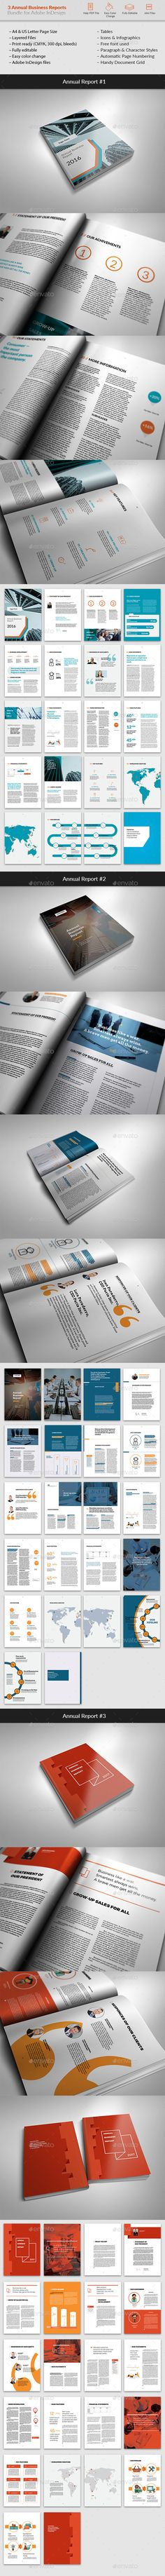 Bundle - 3 Annual Reports Templates InDesign INDD